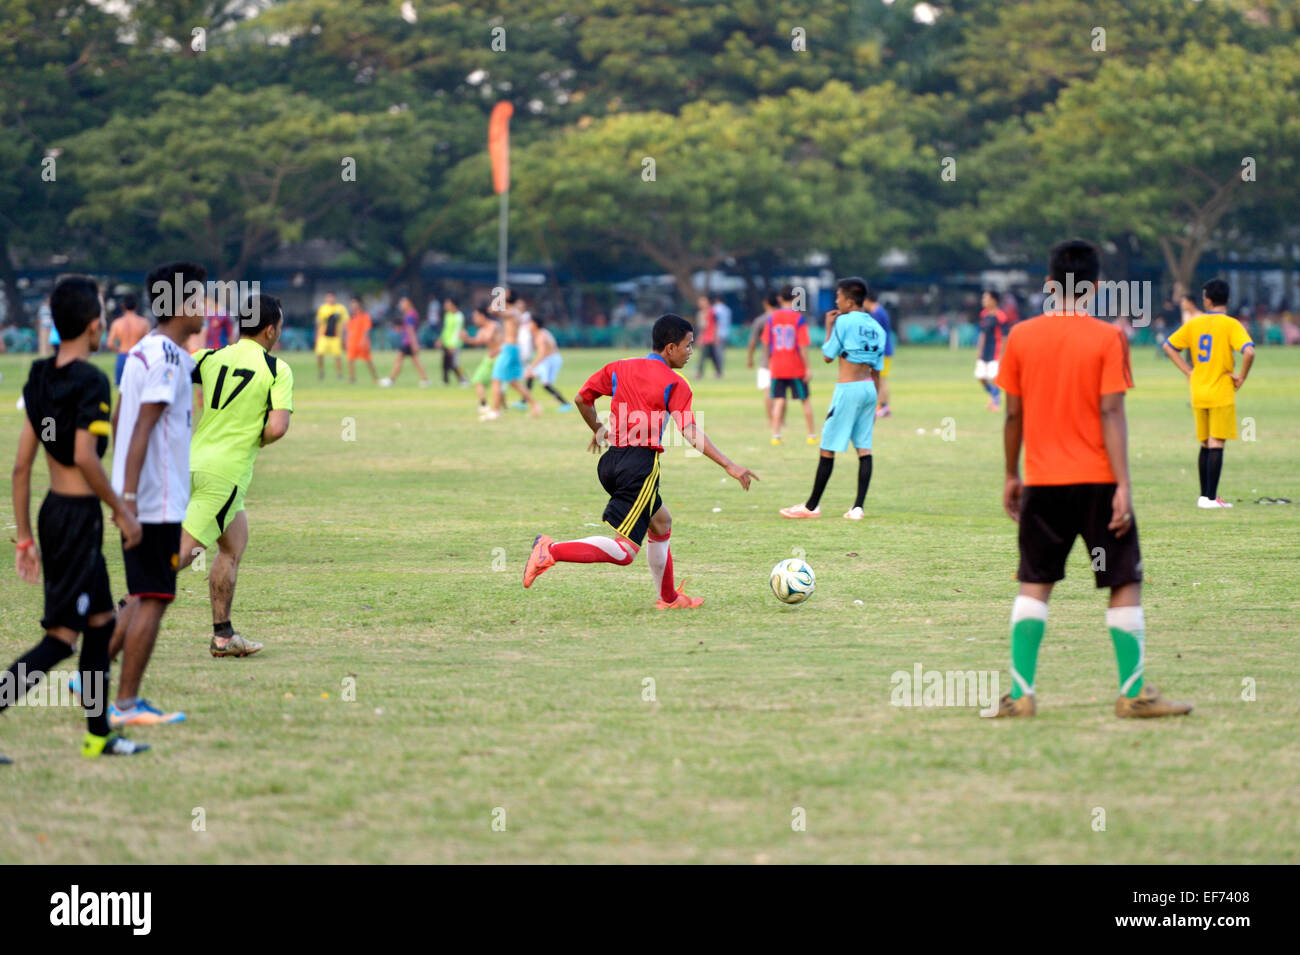 Teenagers playing football in a public park, Banda Aceh, Indonesia Stock Photo